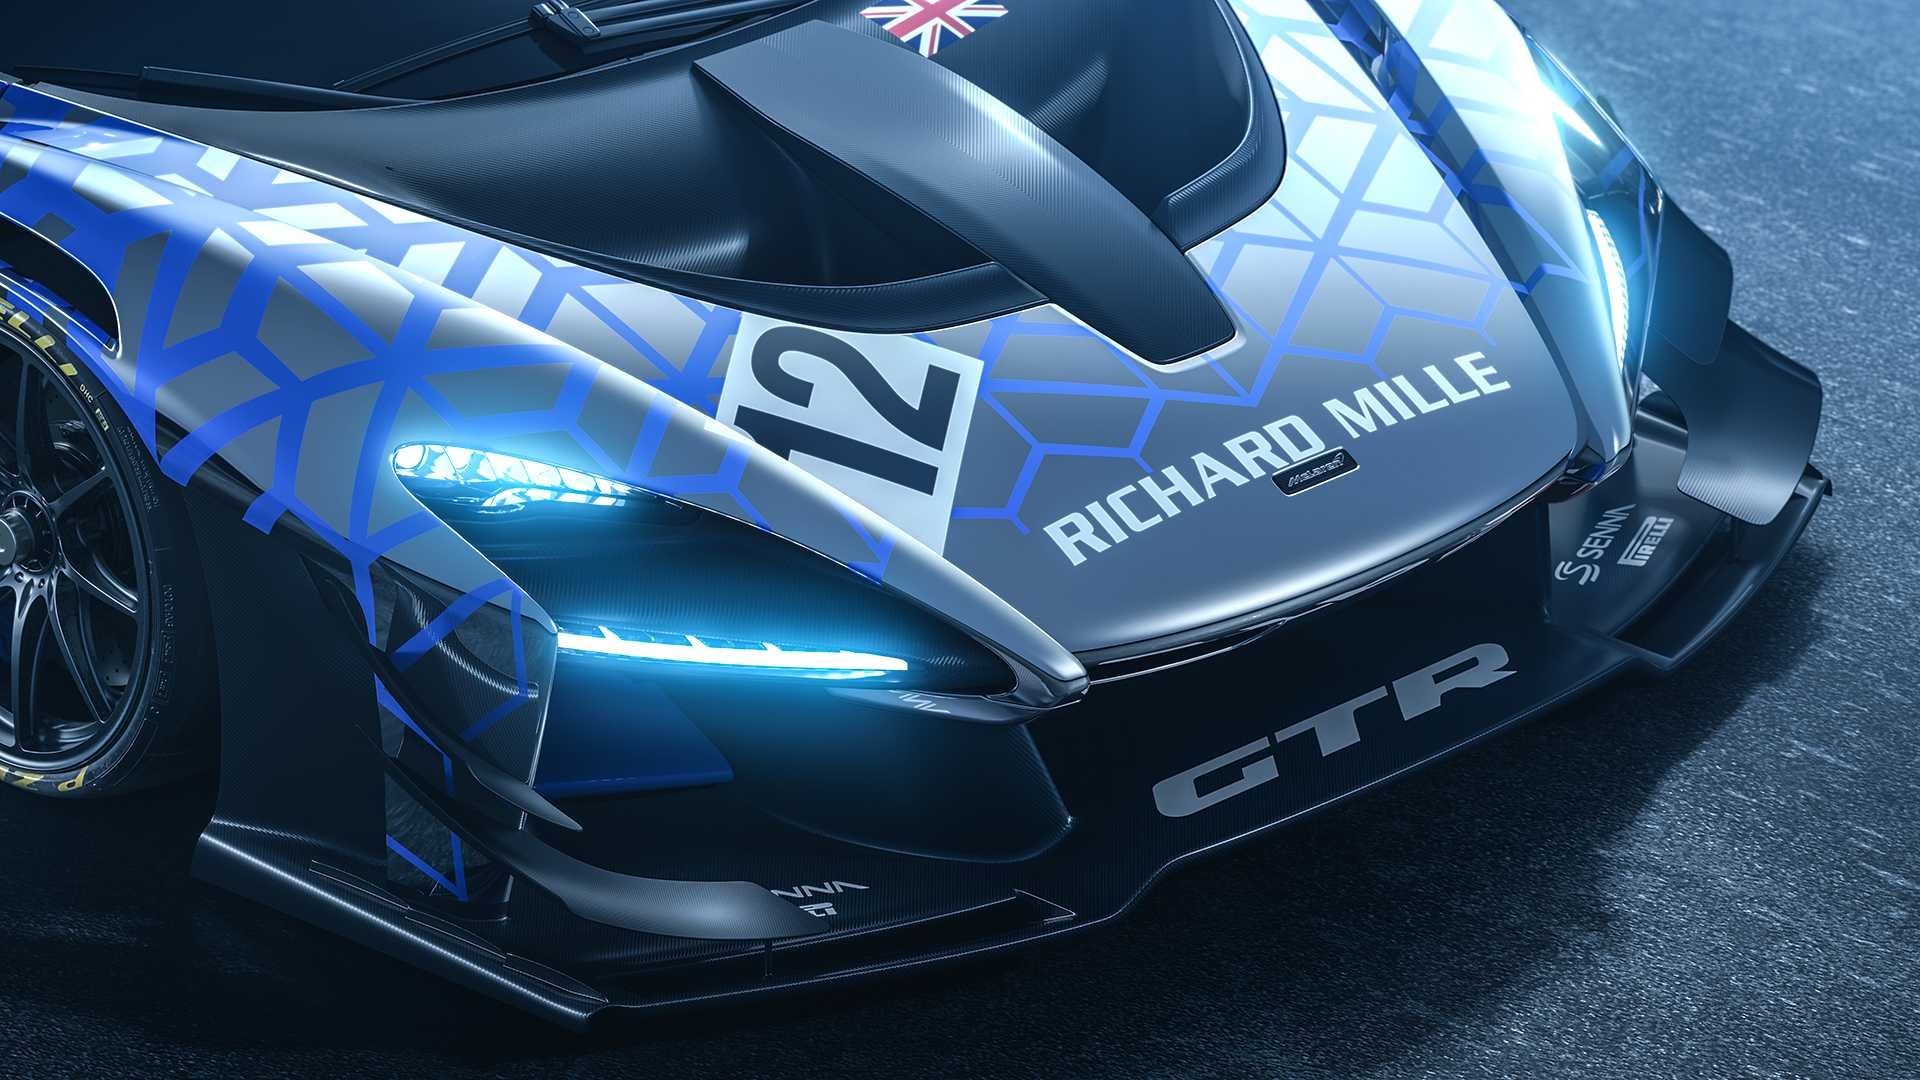 2020 McLaren Senna GTR Headlight Wallpapers (7)